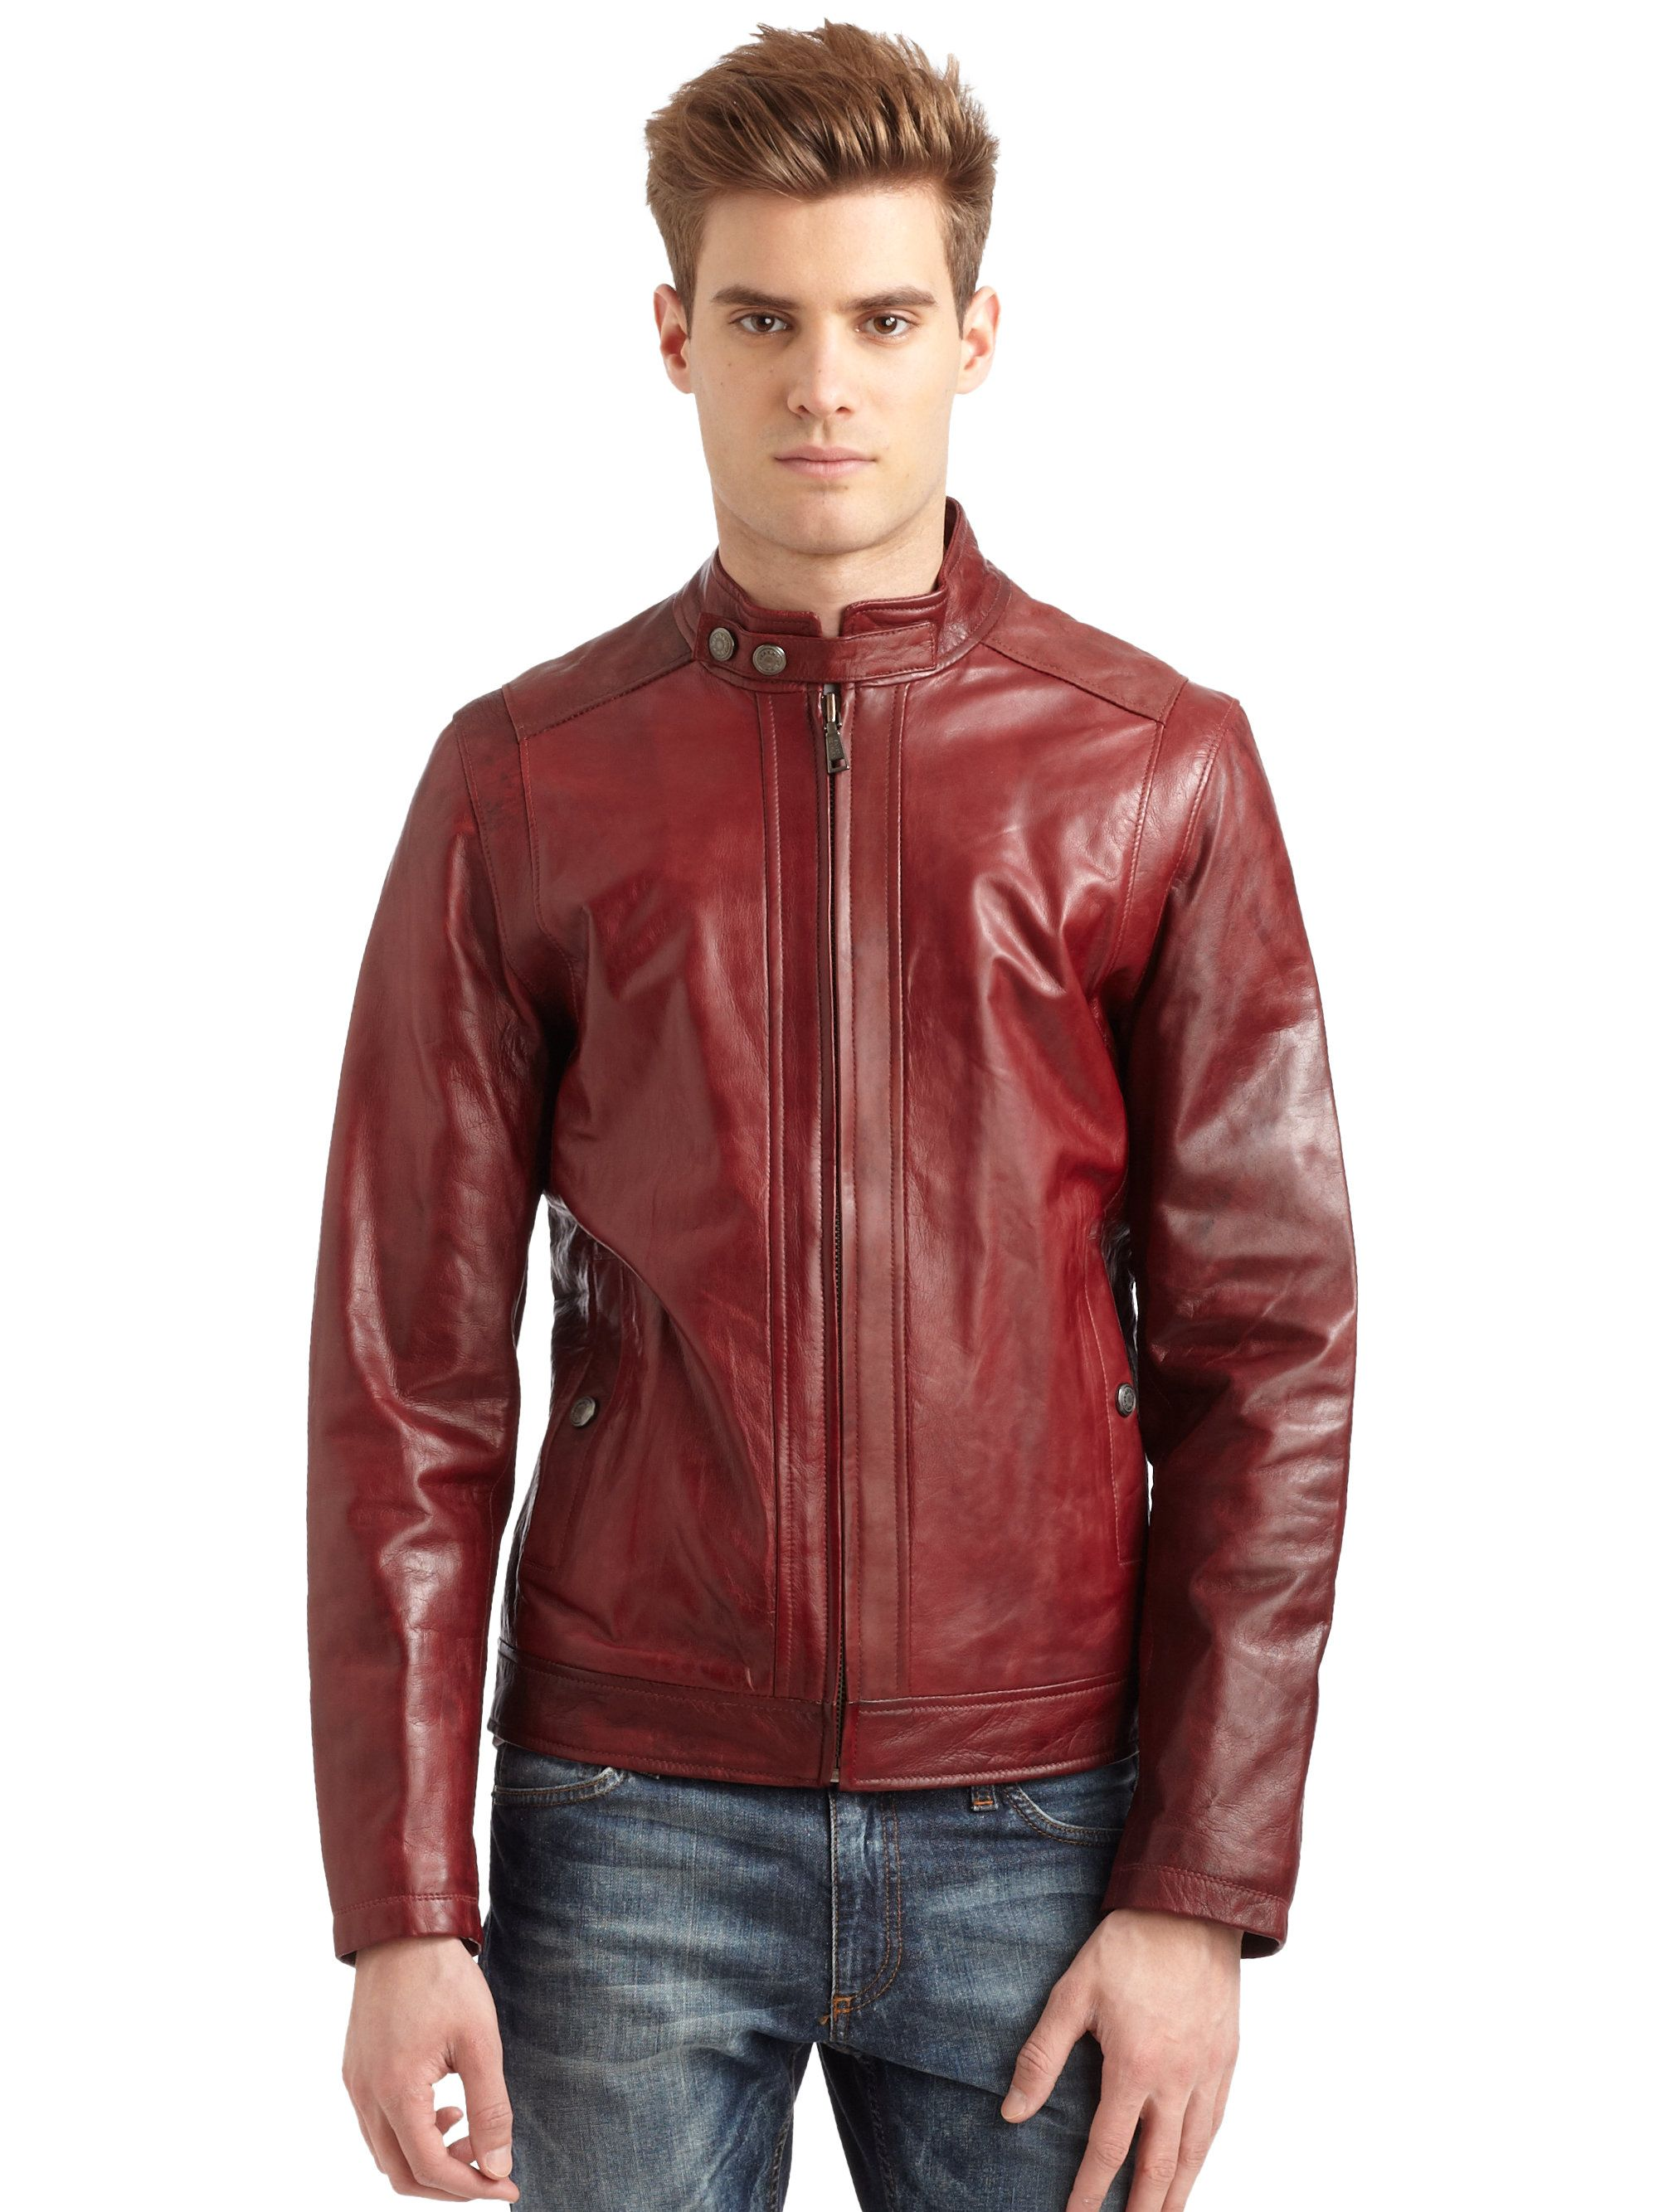 red leather jacket men - Google Search | red | Pinterest | Red ...